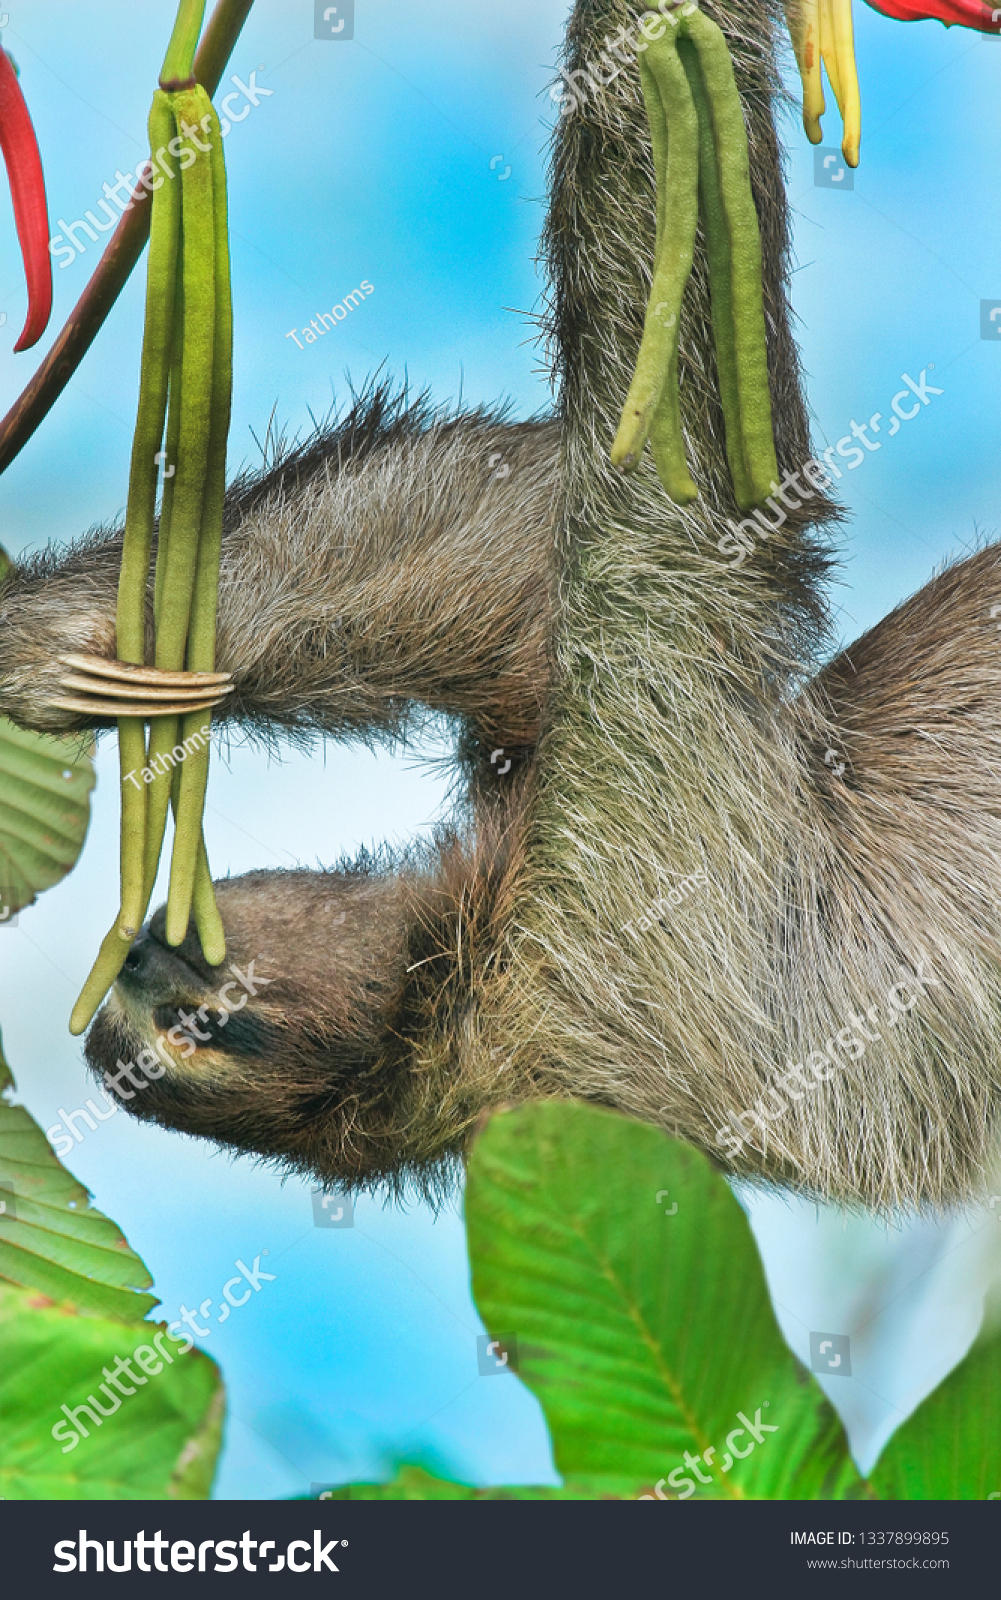 Brown-throated three-toed sloth feeding in the wild naging above ocean; Latin name - Bradypus Variegatus